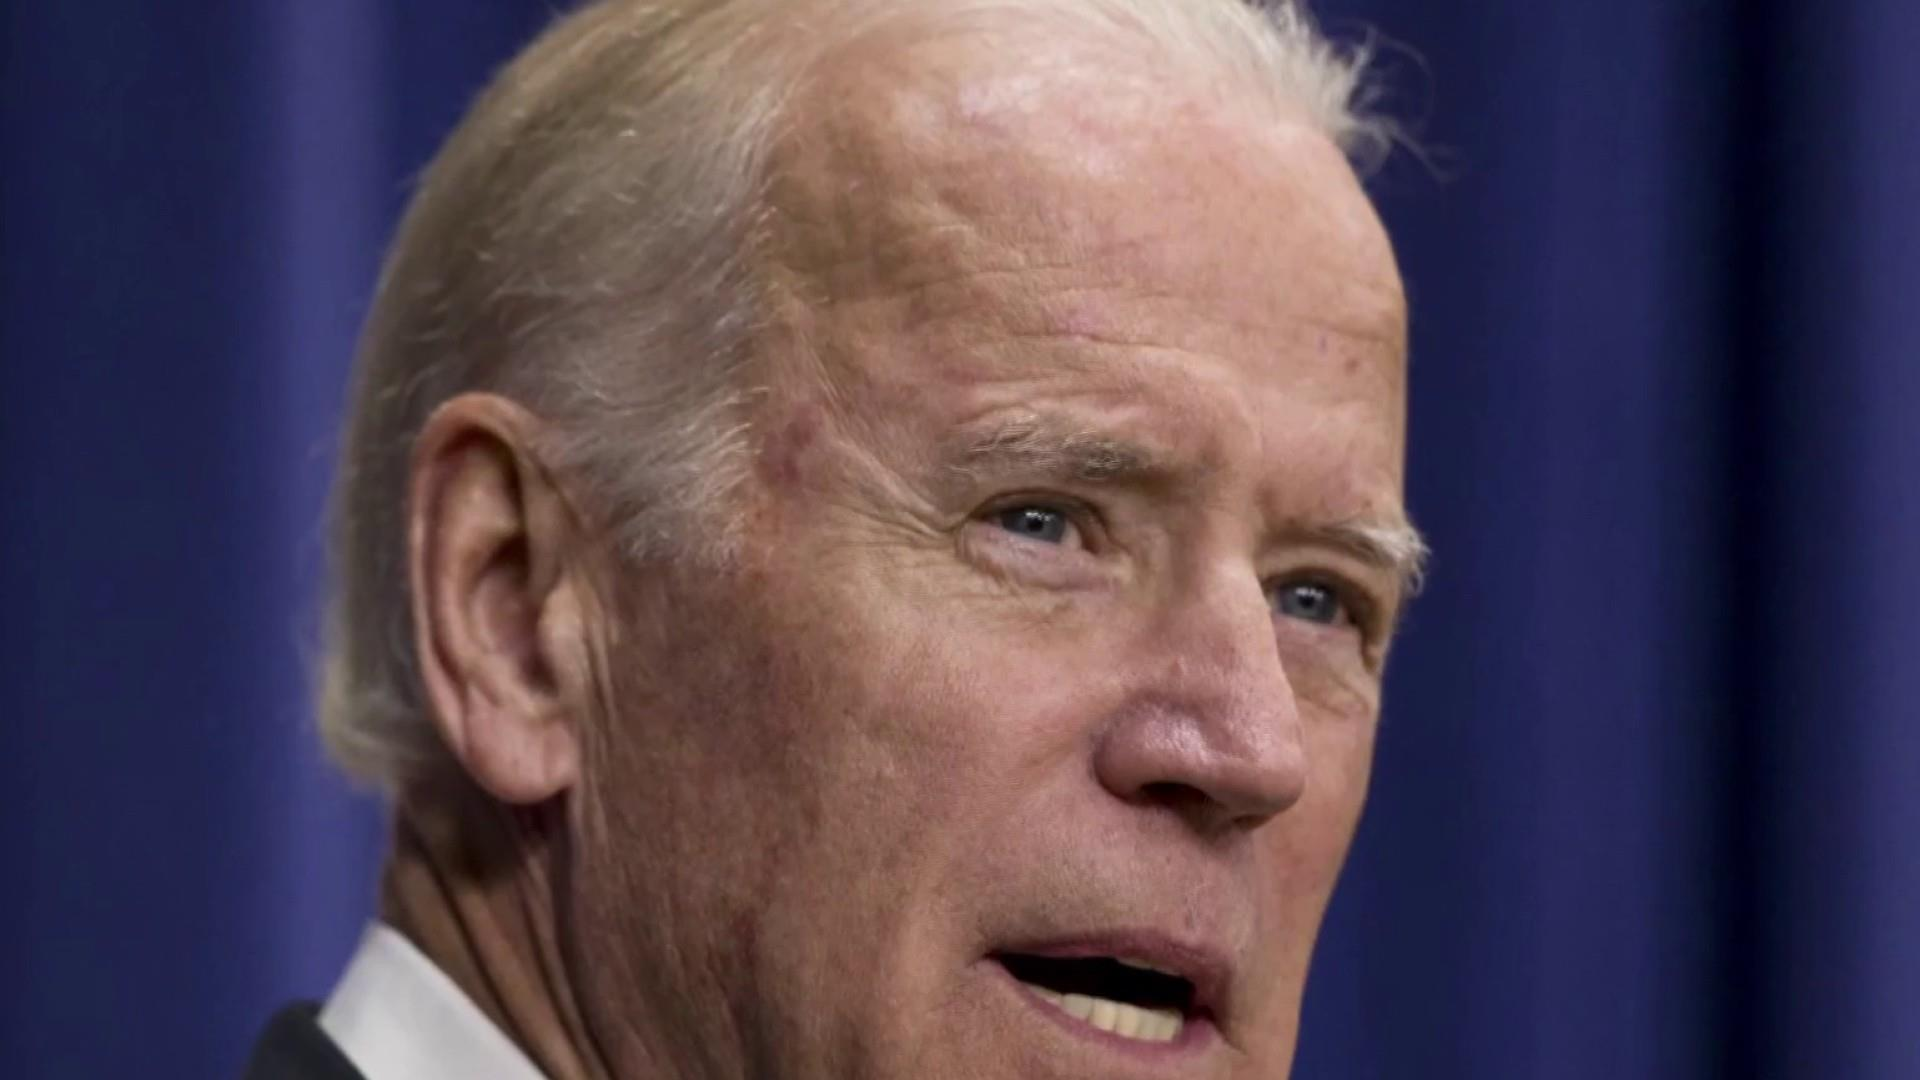 Is Biden the Democrats' only hope?